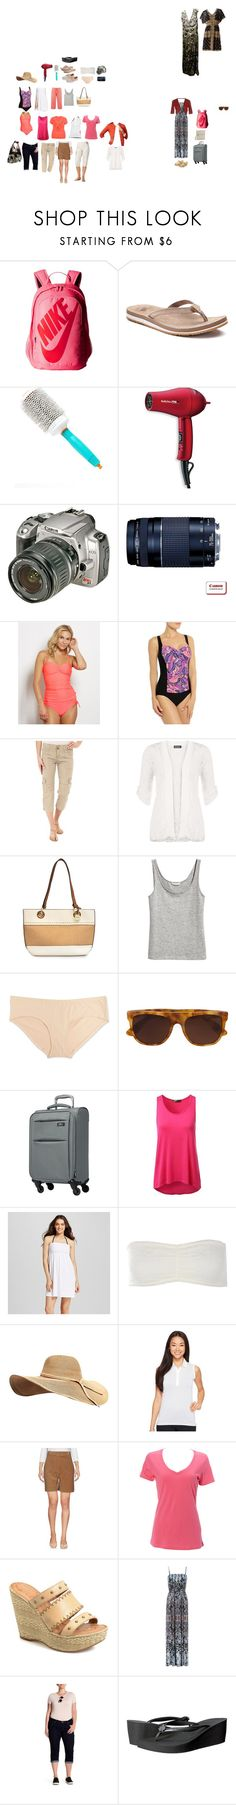 """""""Vegas September 2017 packing list"""" by donovan-heather on Polyvore featuring NIKE, New Balance, Moroccanoil, BaByliss Pro, Sanctuary, WearAll, Nicole Miller, Motherhood Maternity, RetroSuperFuture and Skyway"""